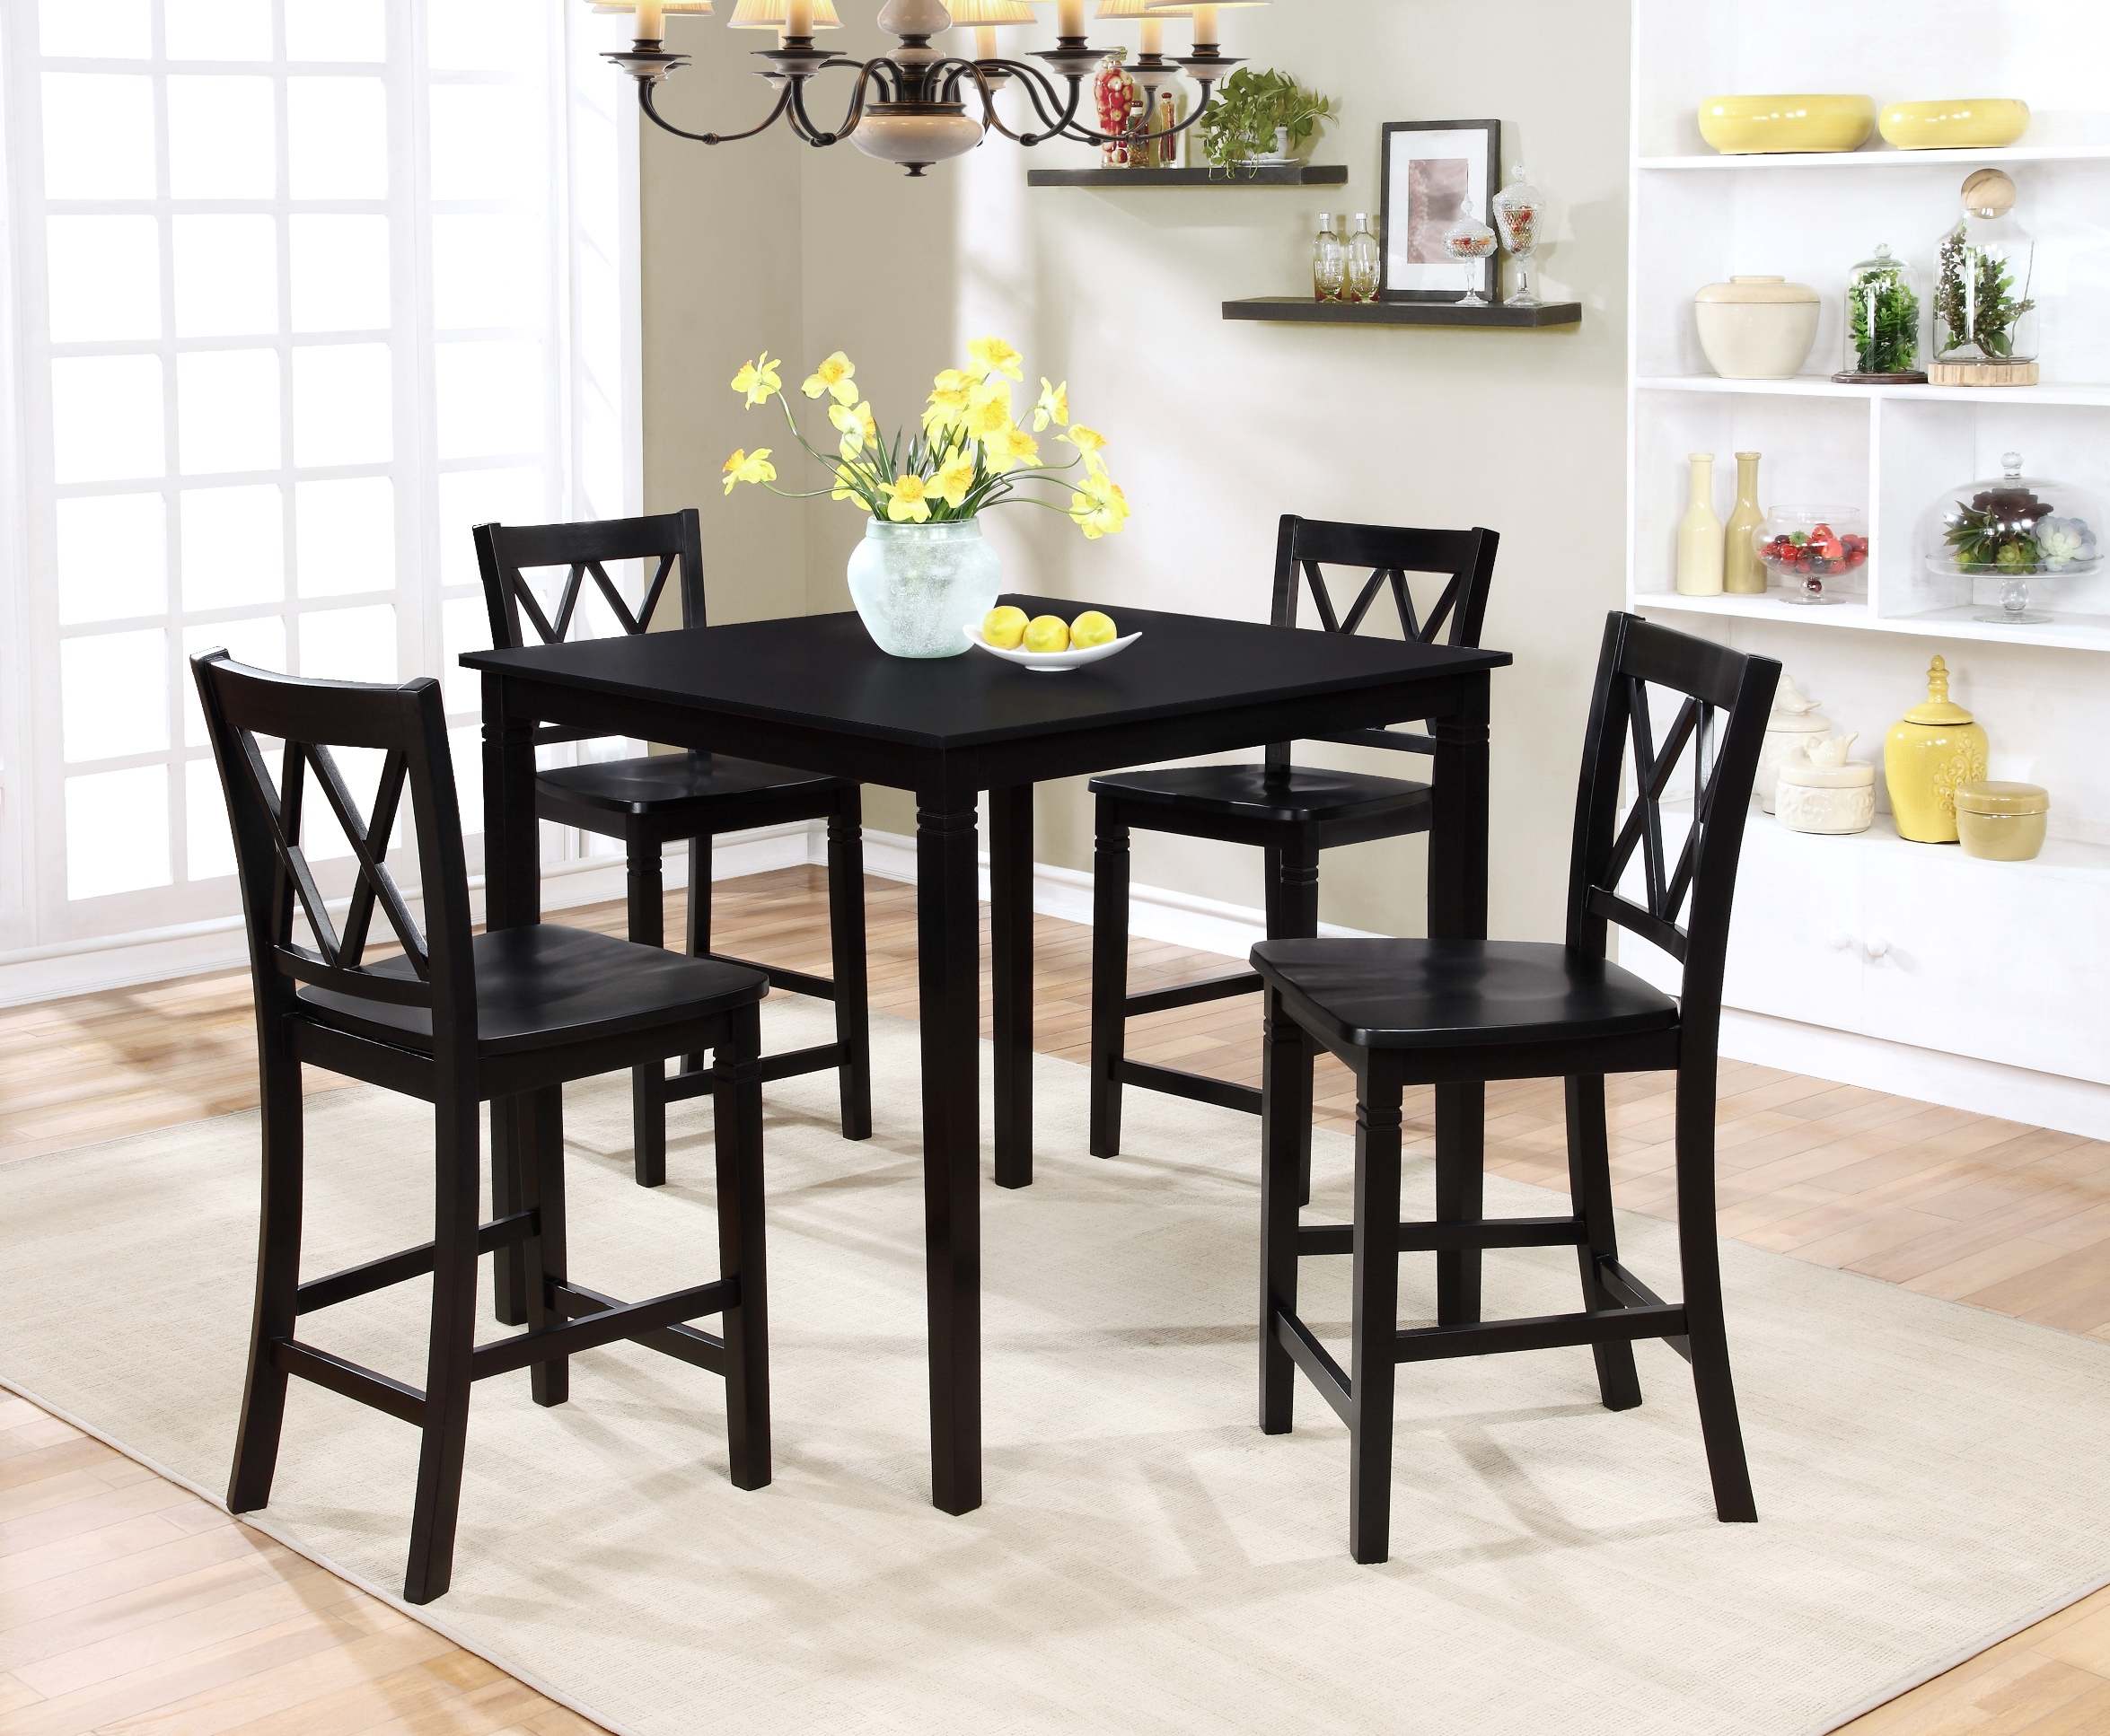 small dining sets ... small dining set dining room, dining room table with bench 7 piece QGZOXBO